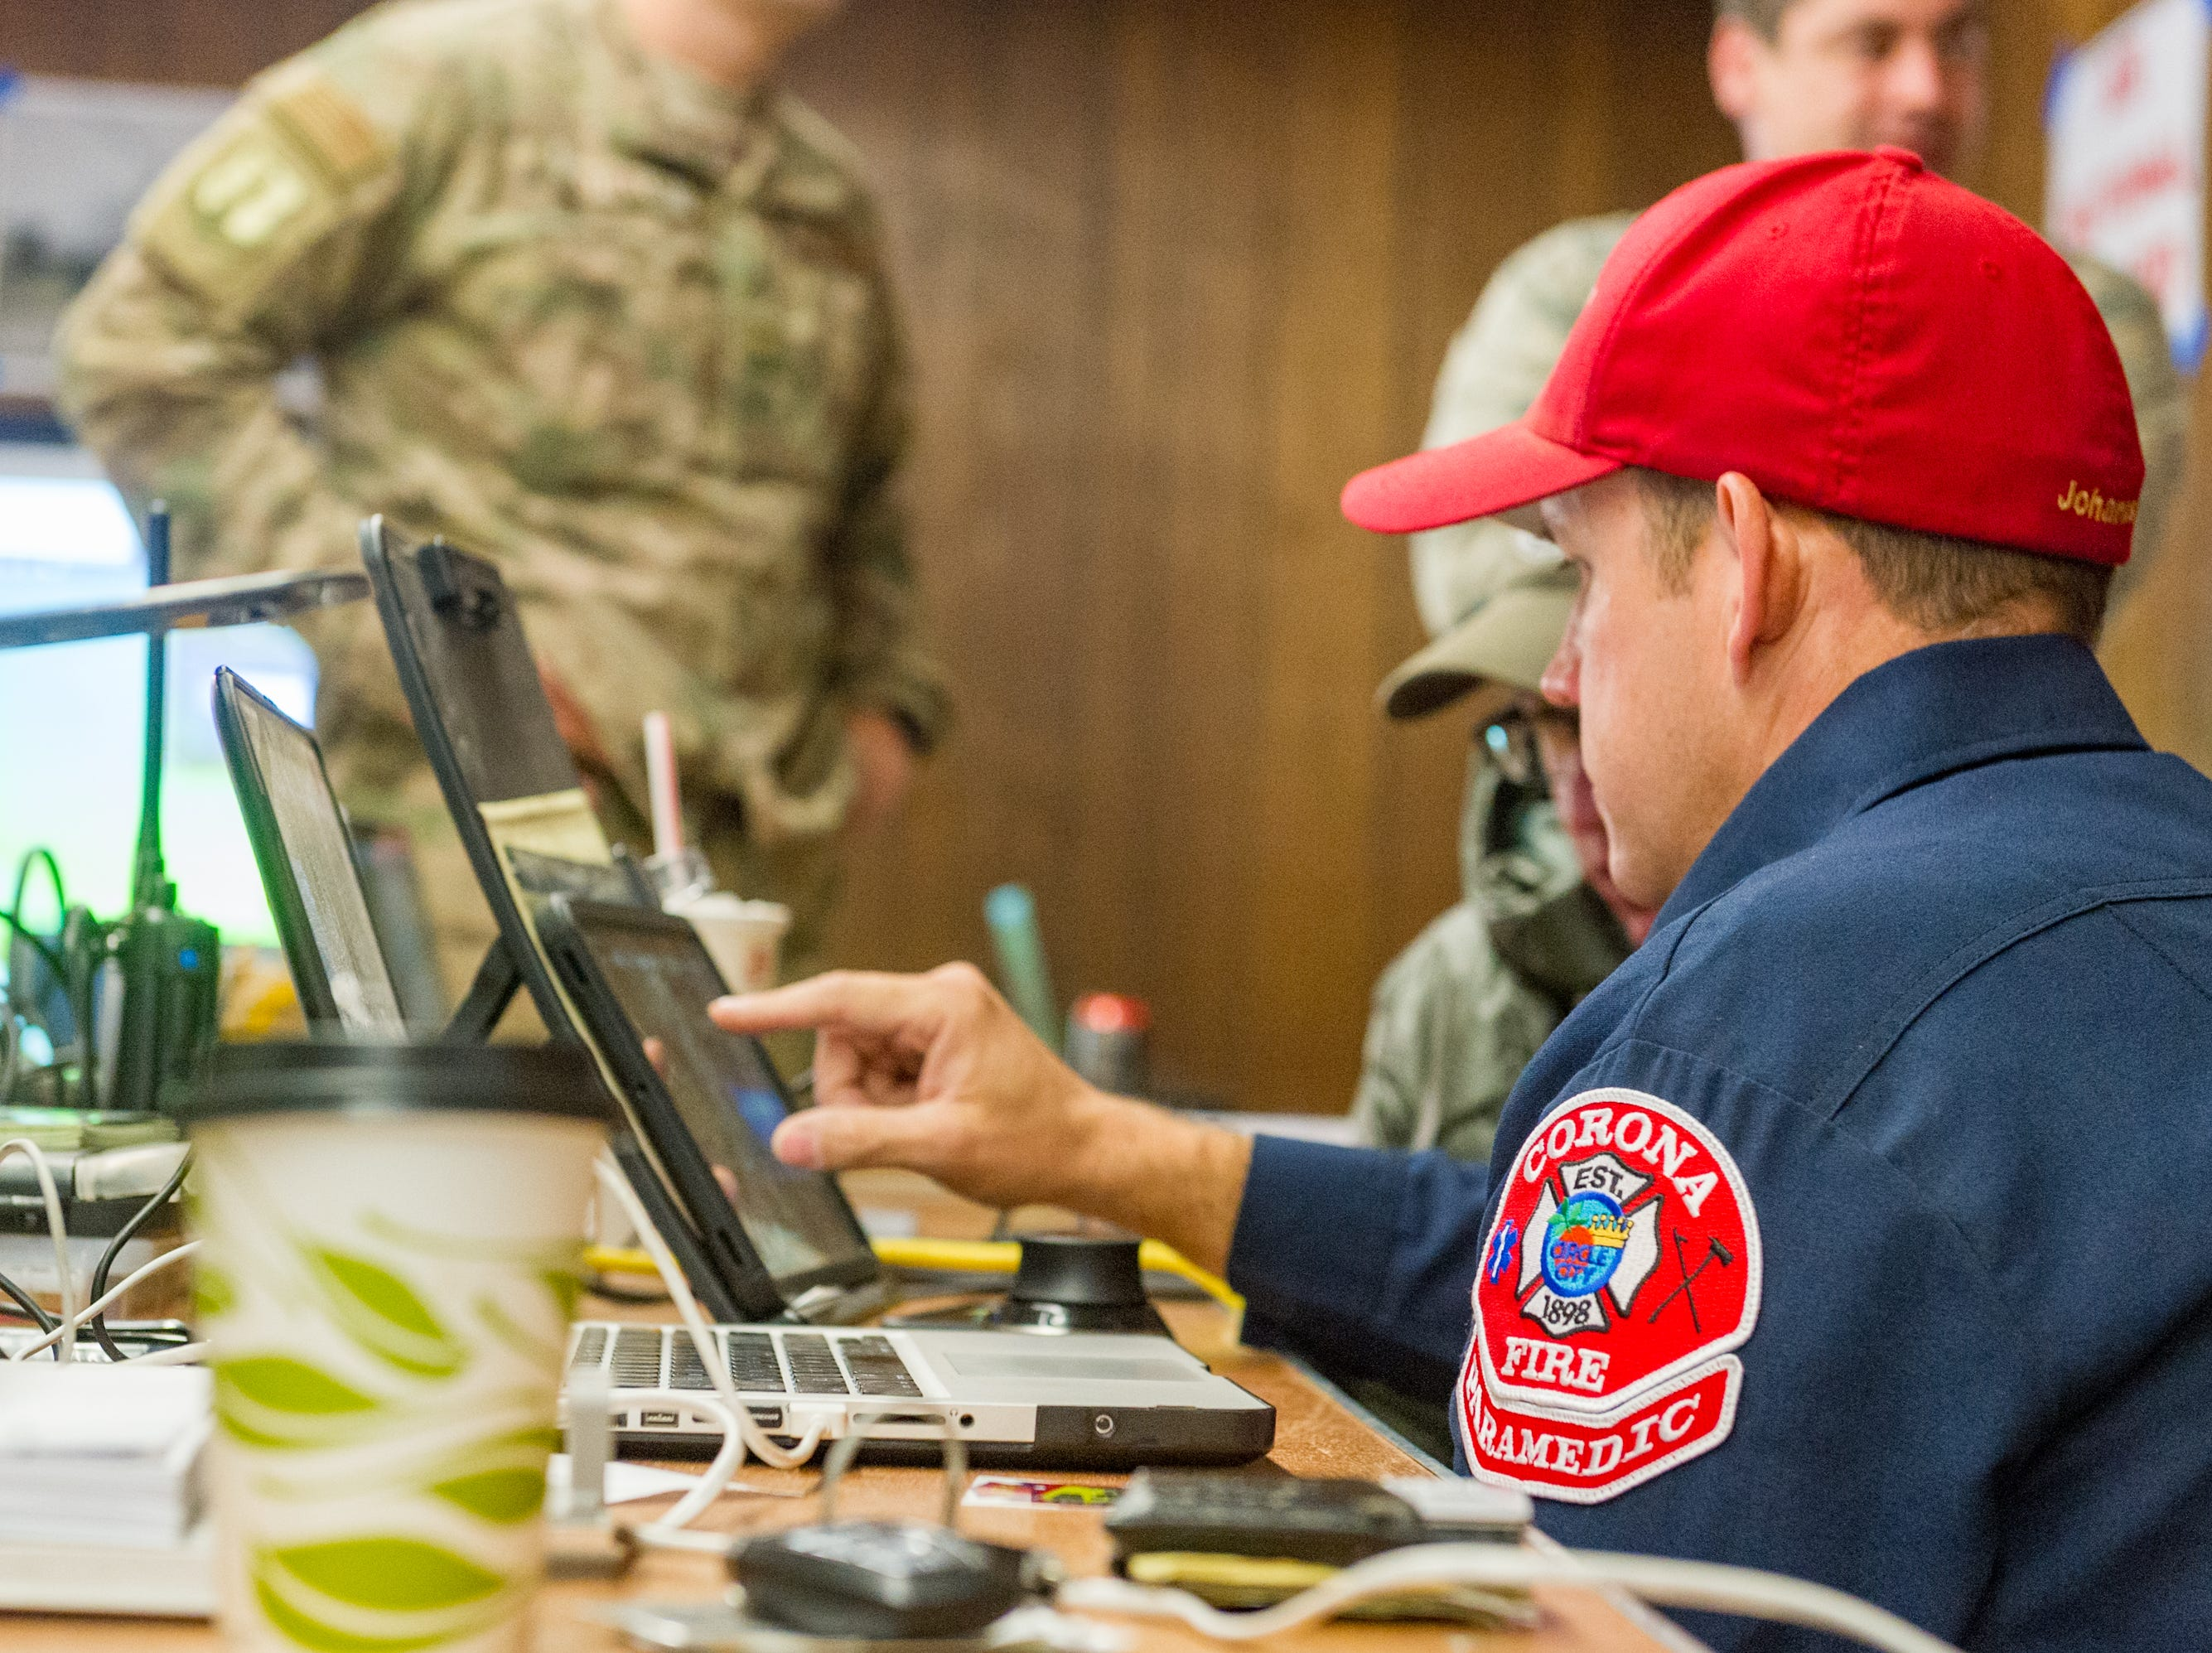 Command Center at the Chico Fairgrounds for the Camp Fire in Northern California. Monday, Nov. 12, 2018.